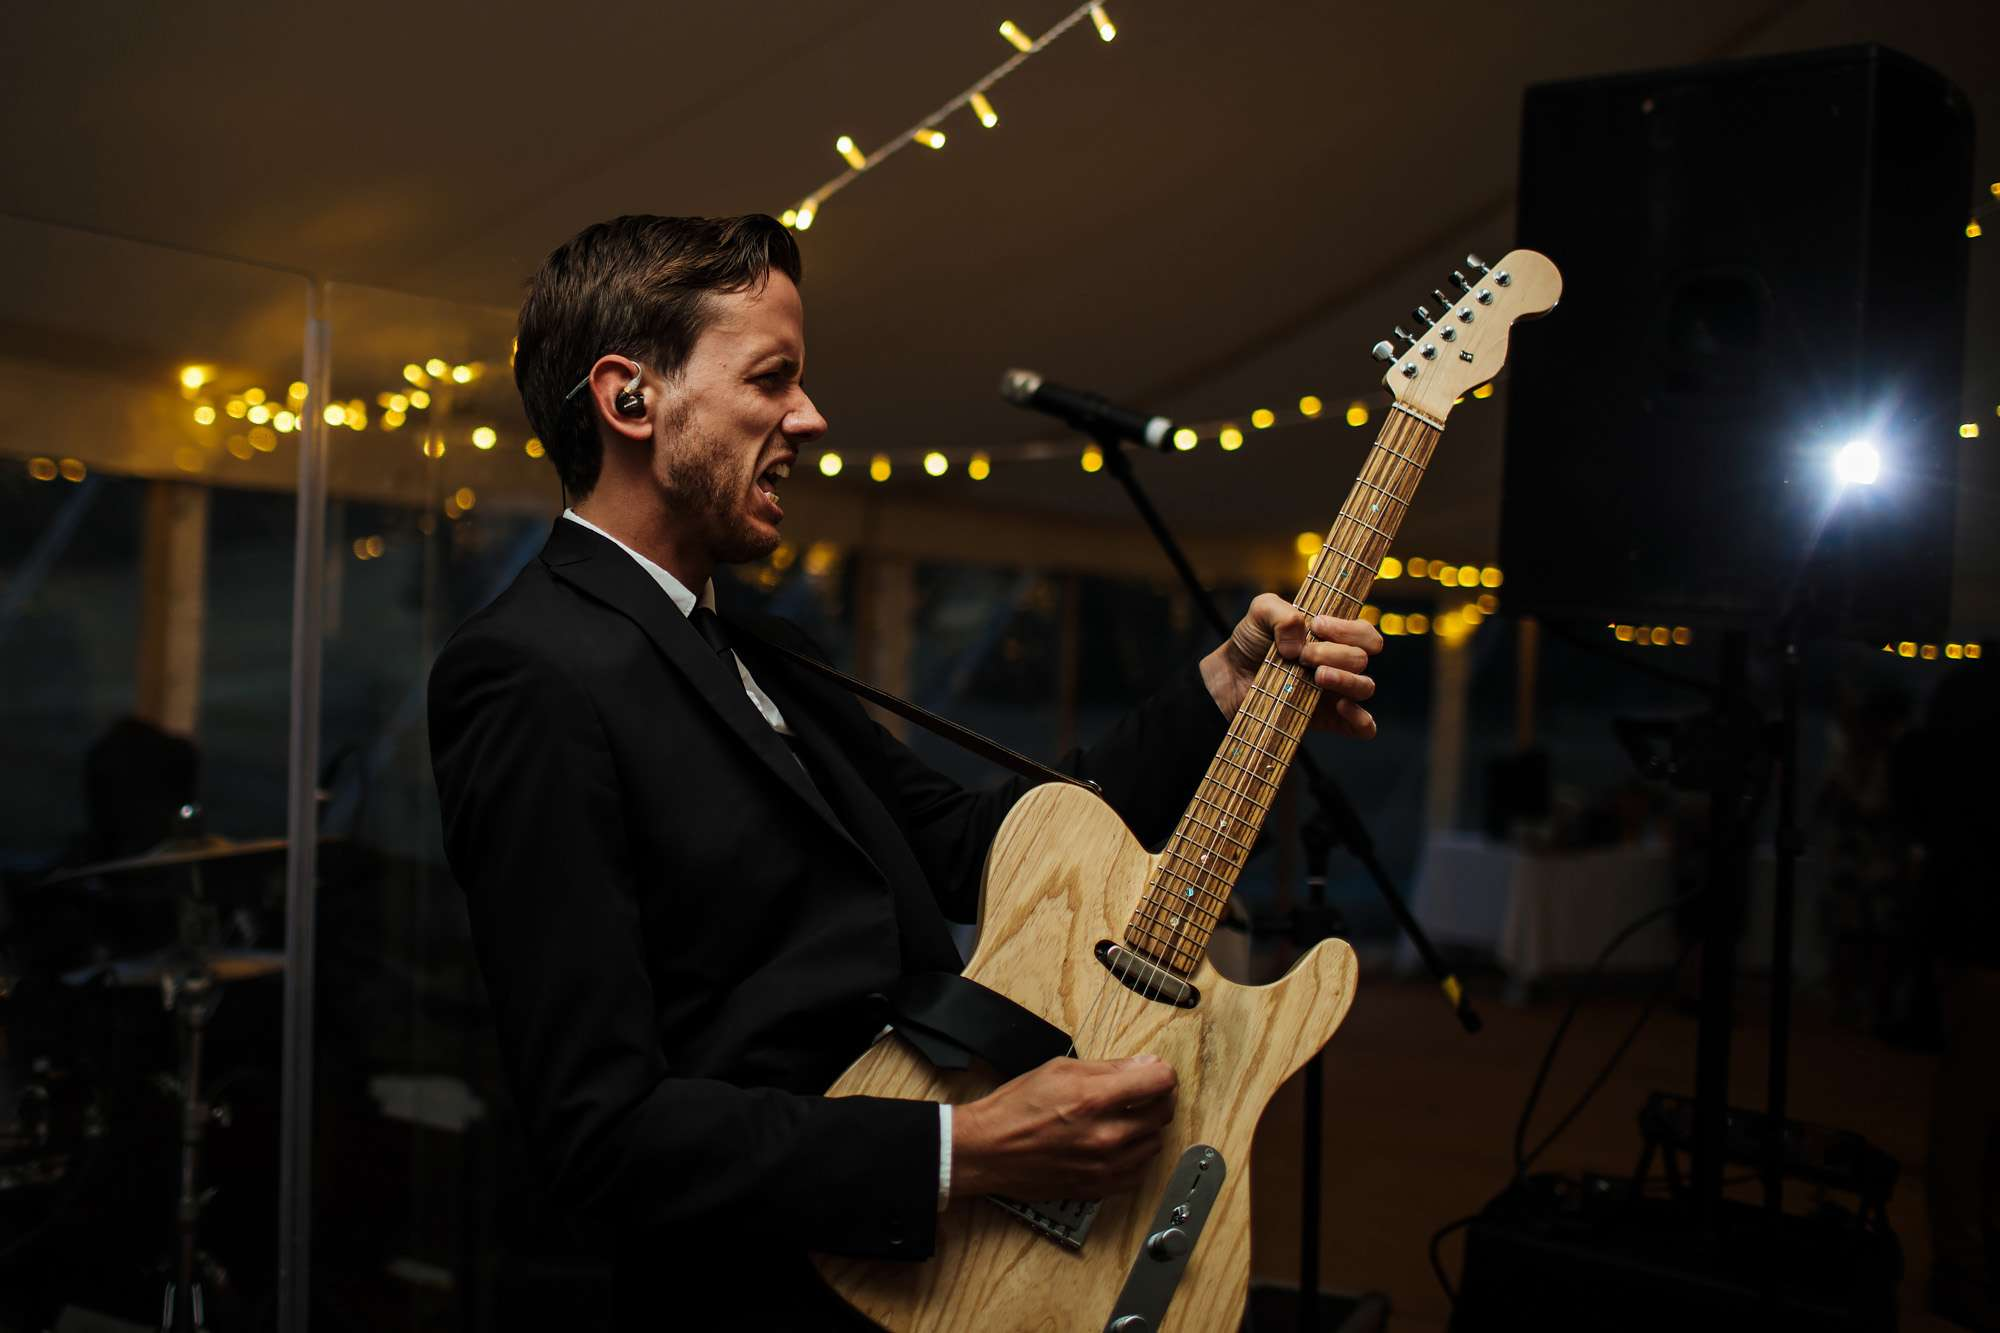 Guitarist performing at a wedding at Fixby Hall